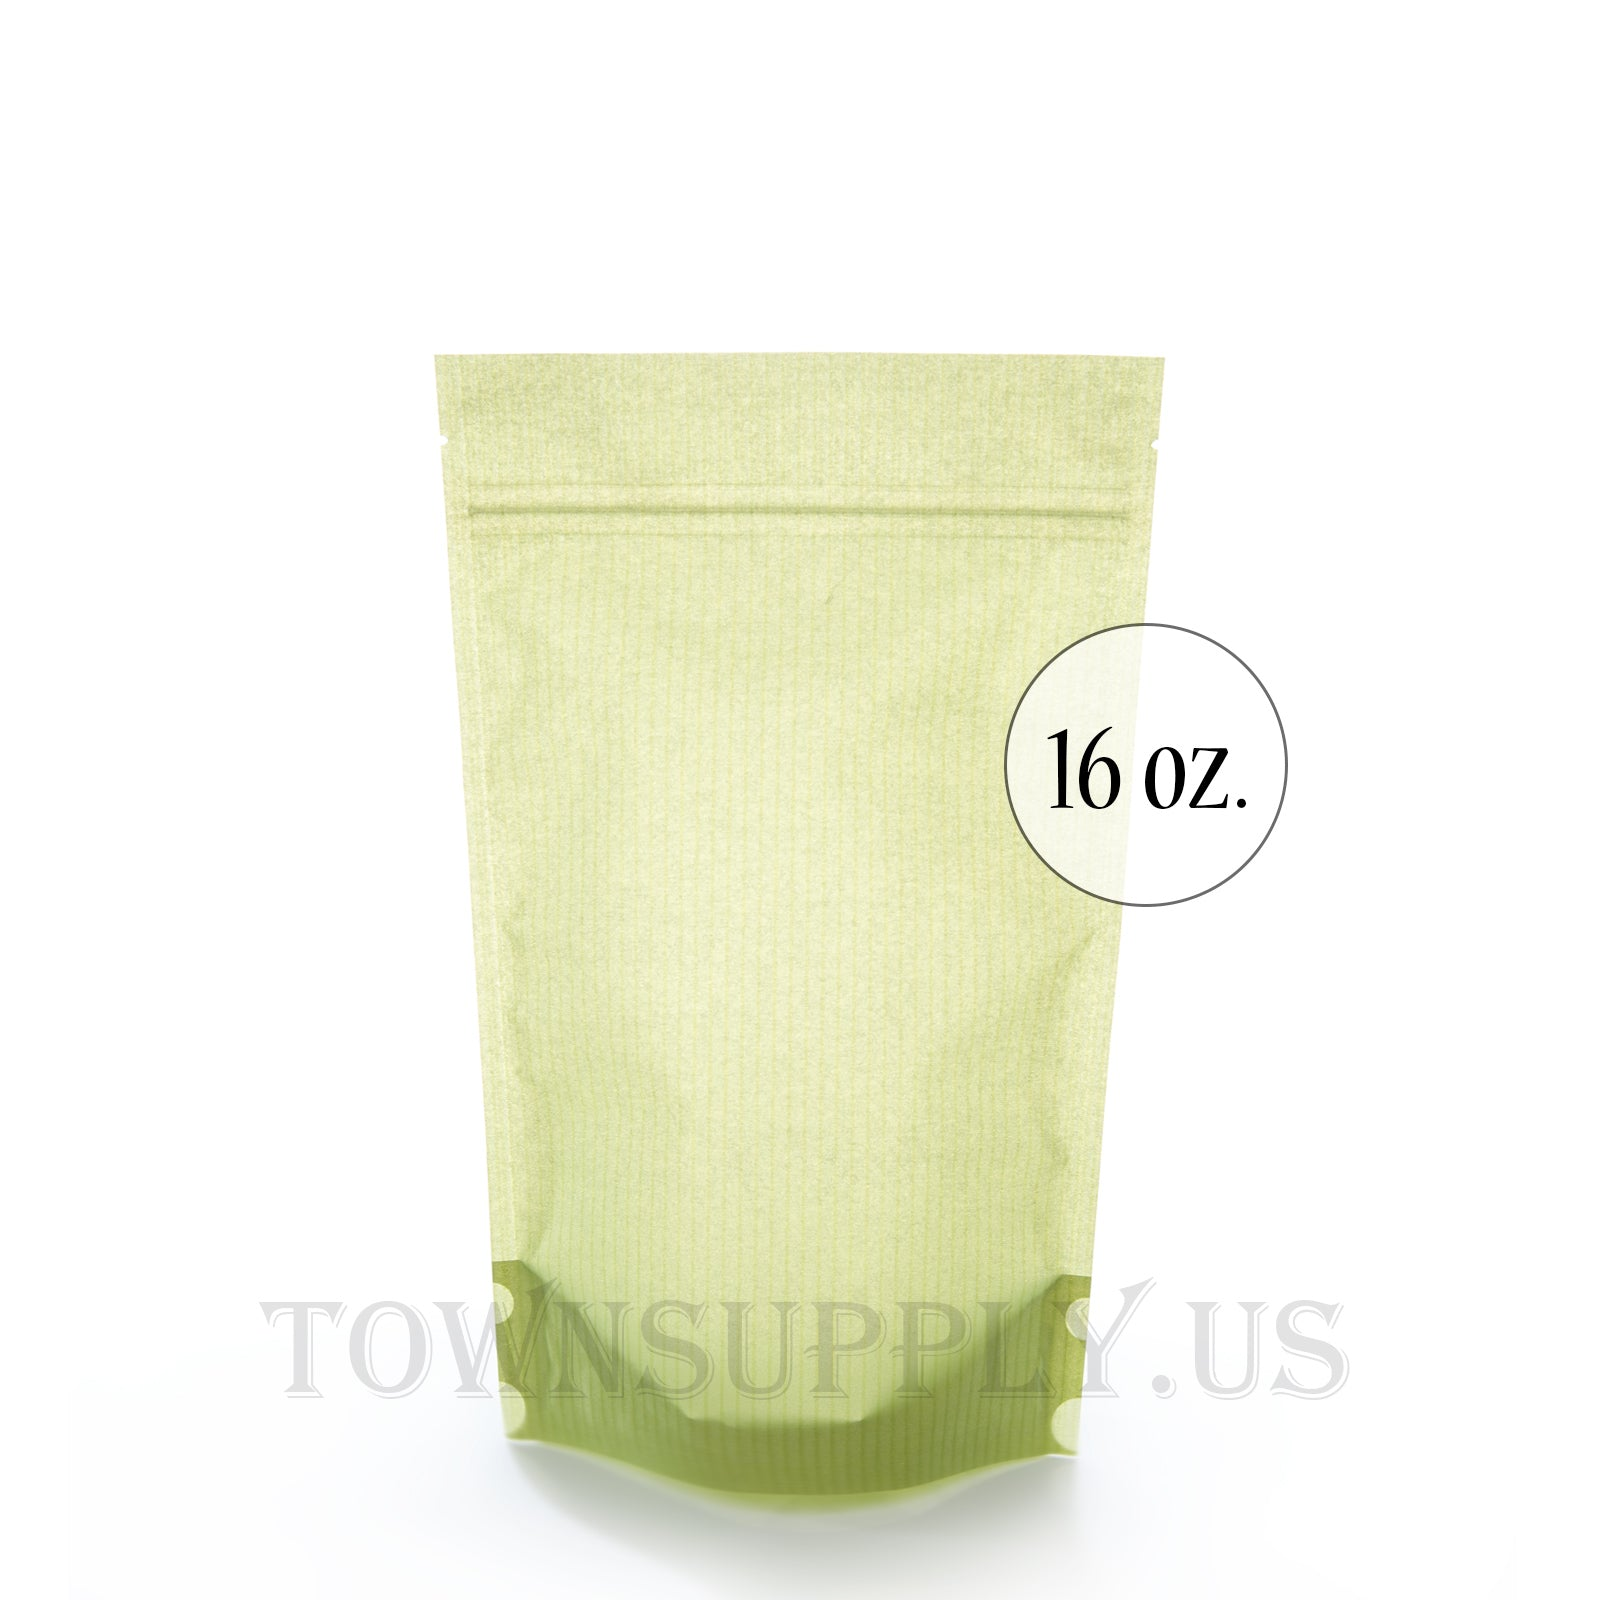 patterned green poly lined stand up pouch, 16 oz. bags - Town Supply